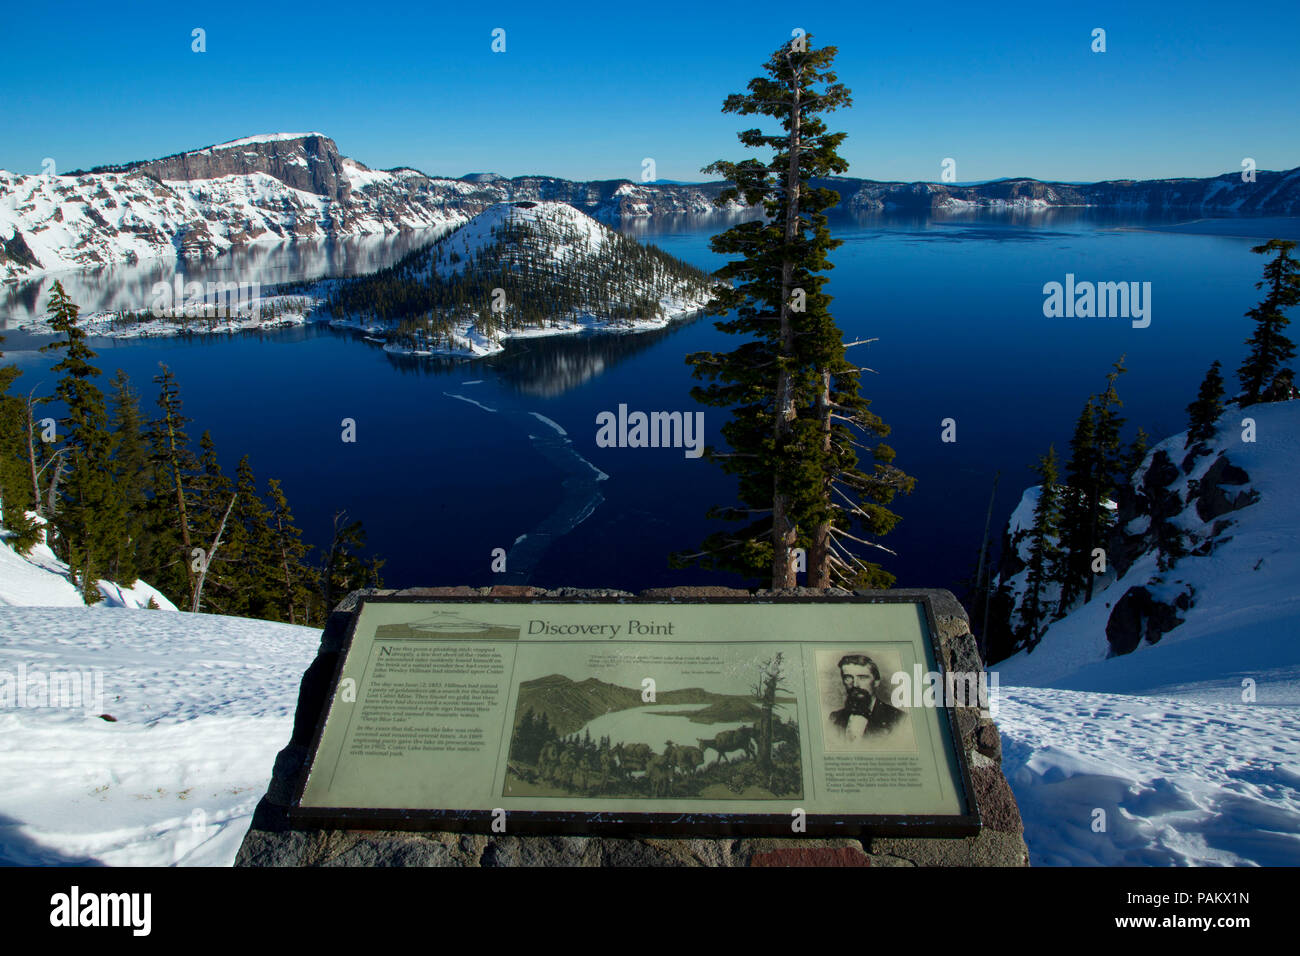 Discovery Point interpretive board to Crater Lake with Wizard Island, Crater Lake National Park, Oregon - Stock Image